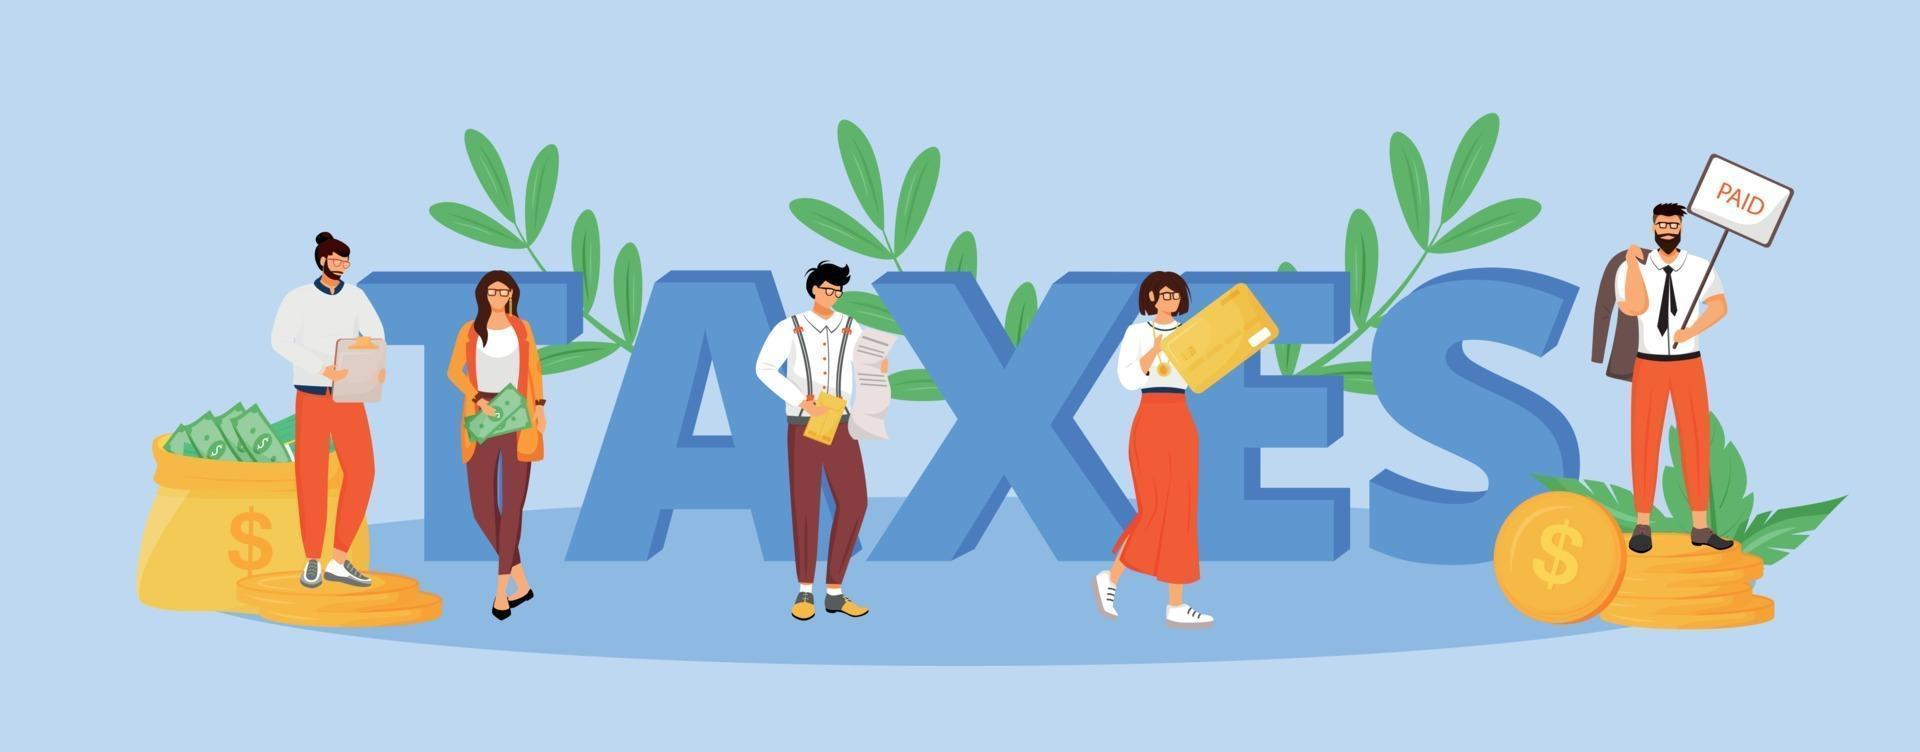 Taxes word concepts flat color vector banner. Isolated typography with tiny cartoon characters. Taxation policy, legal obligation. Utility bills and income taxes payment creative illustration on blue